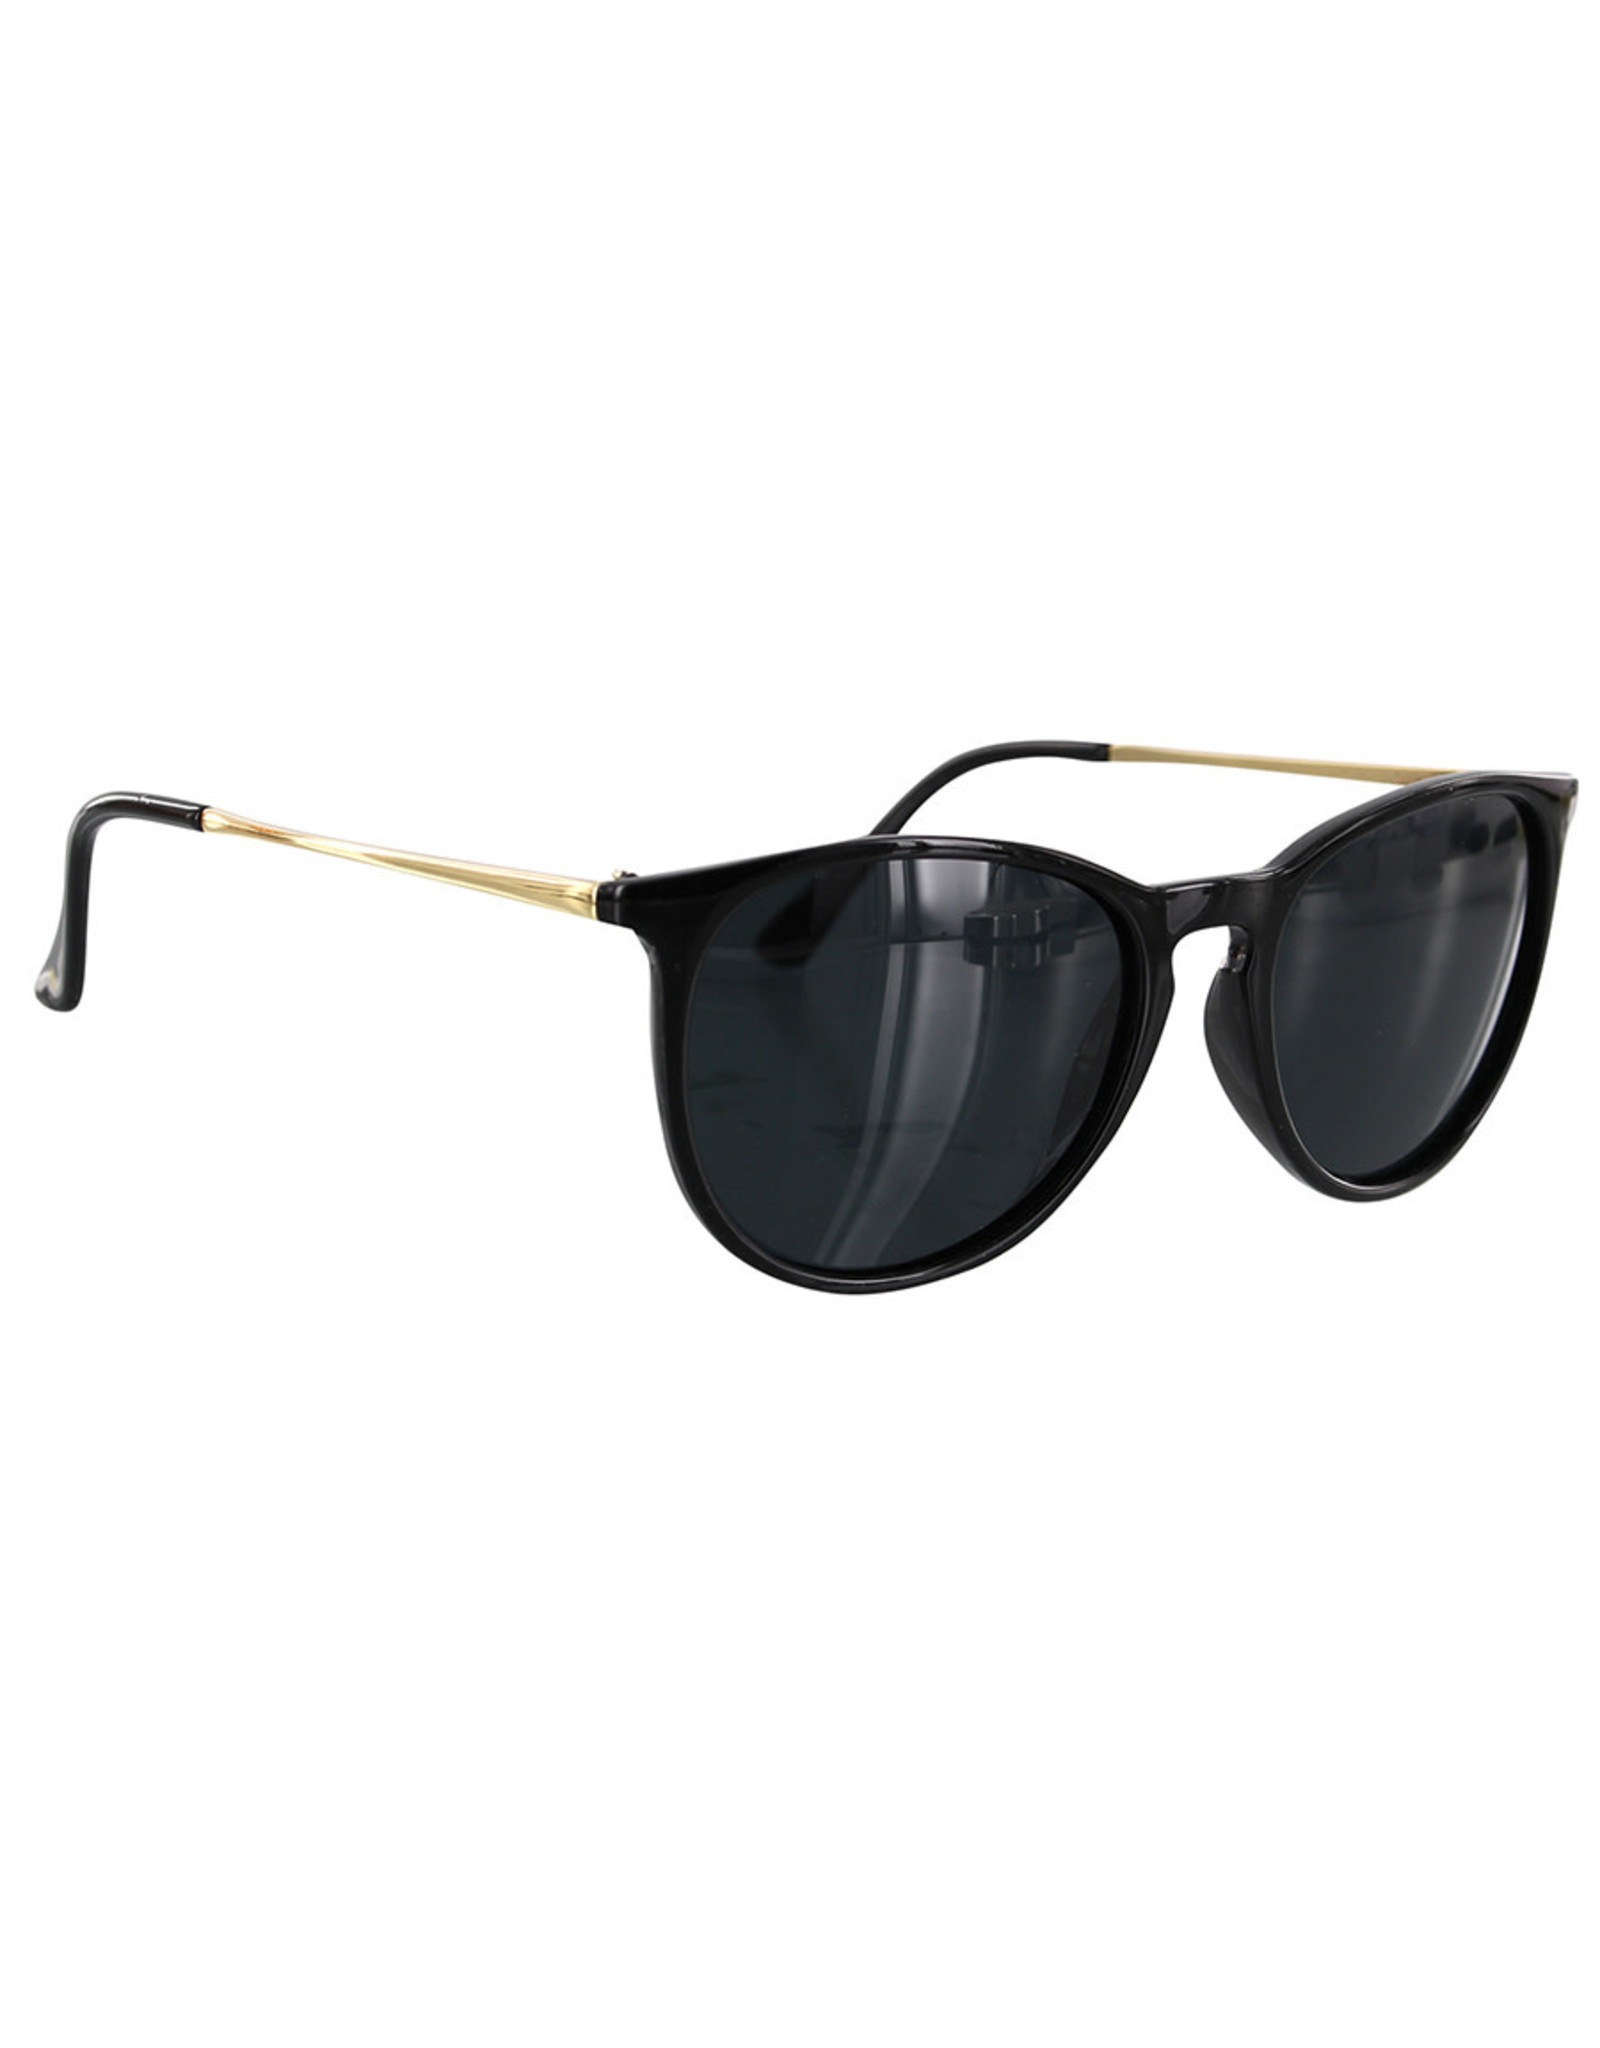 Glassy Sunglasses Glassy Sunglasses Sierra (Black Gold/Grey Polarized Lens)